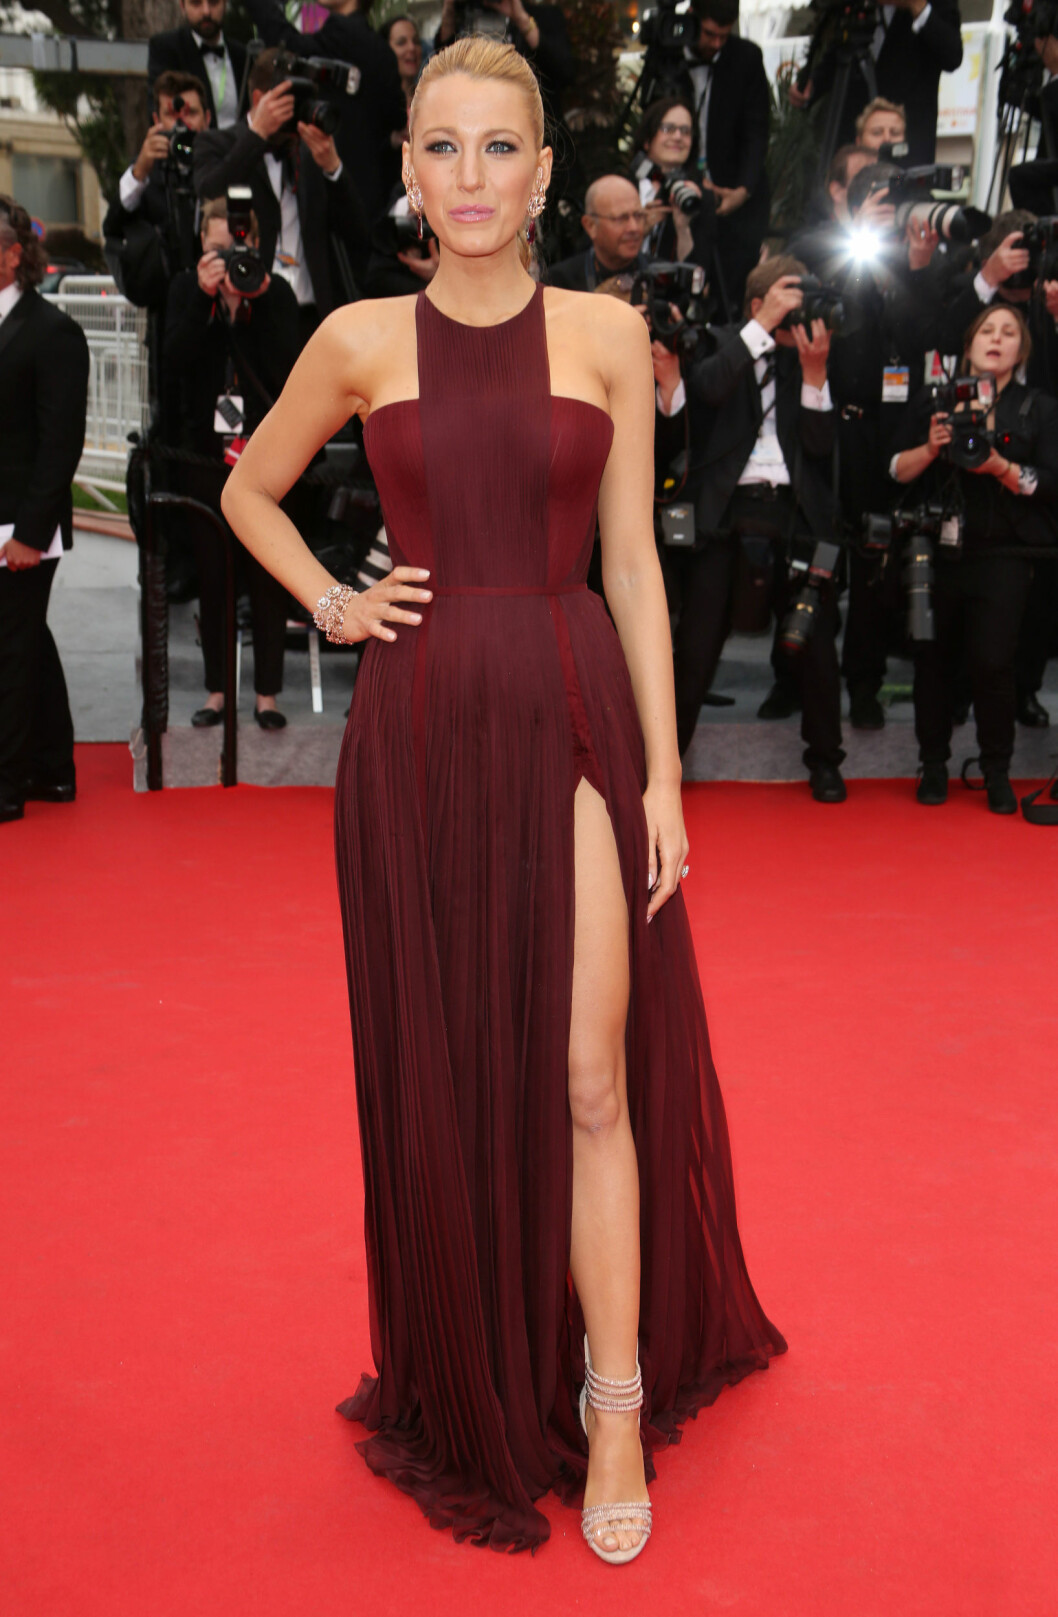 Blake Lively Foto: All Over Pres